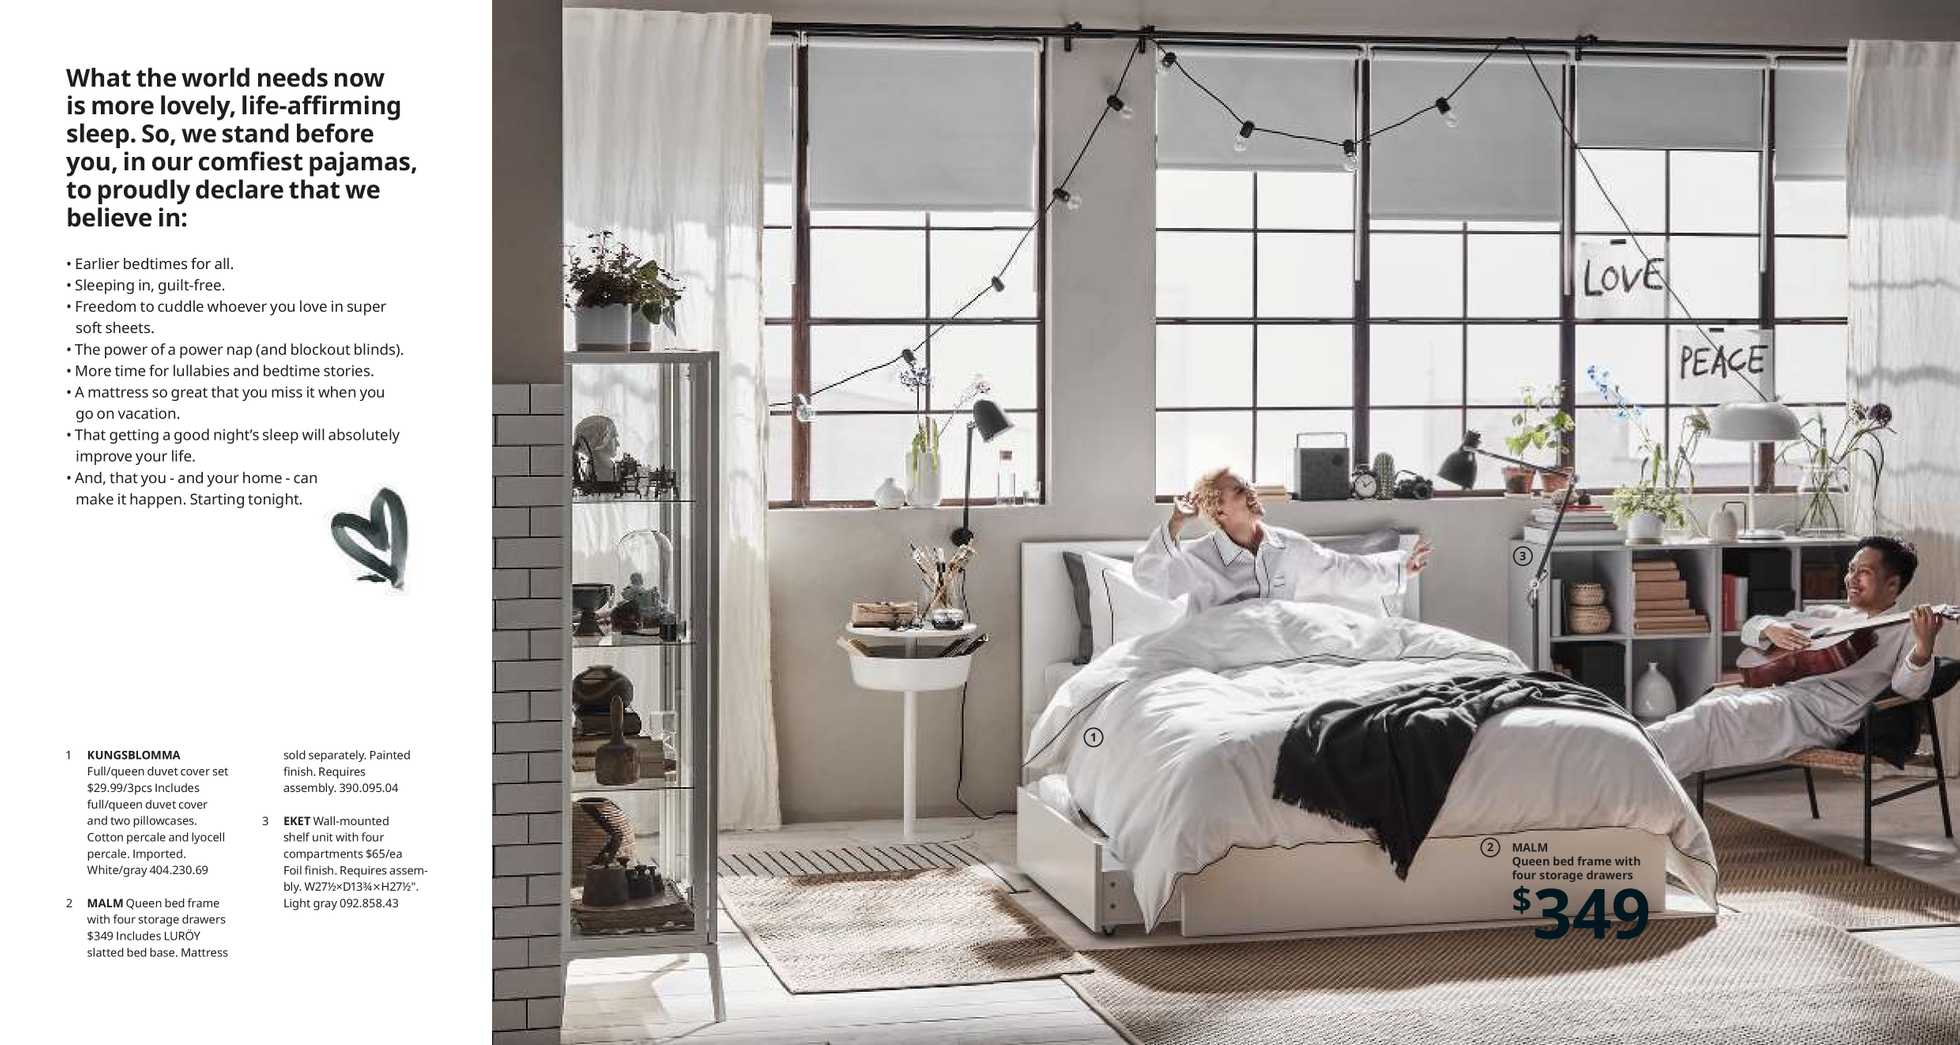 Ikea - deals are valid from 12/01/19 to 12/01/20 - page 2. The promotion includes bed, drawers, mattress